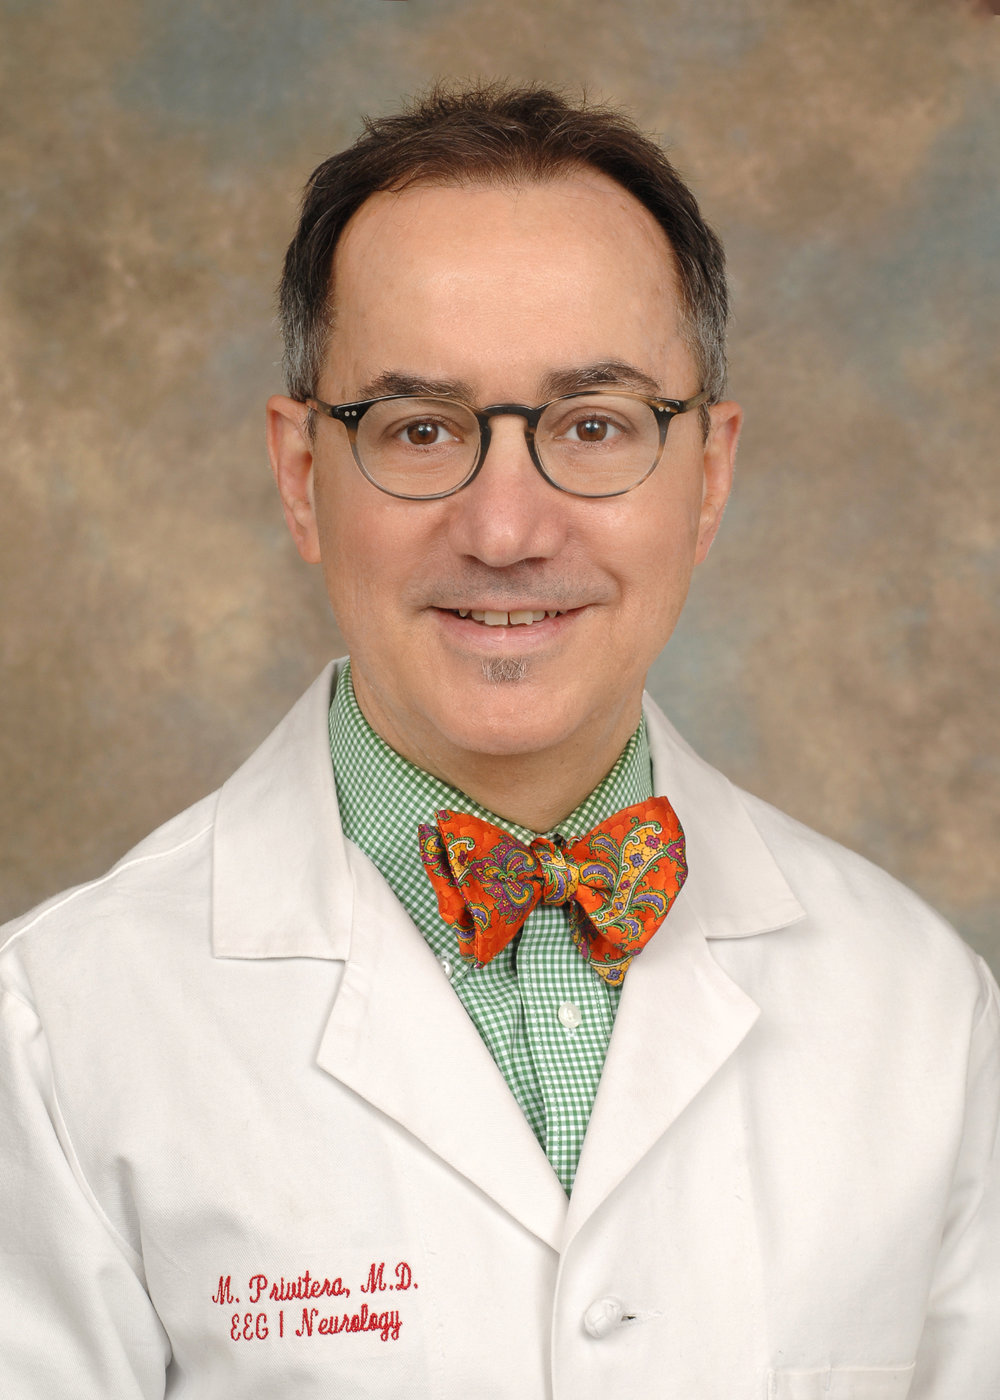 Michael Privitera, MD